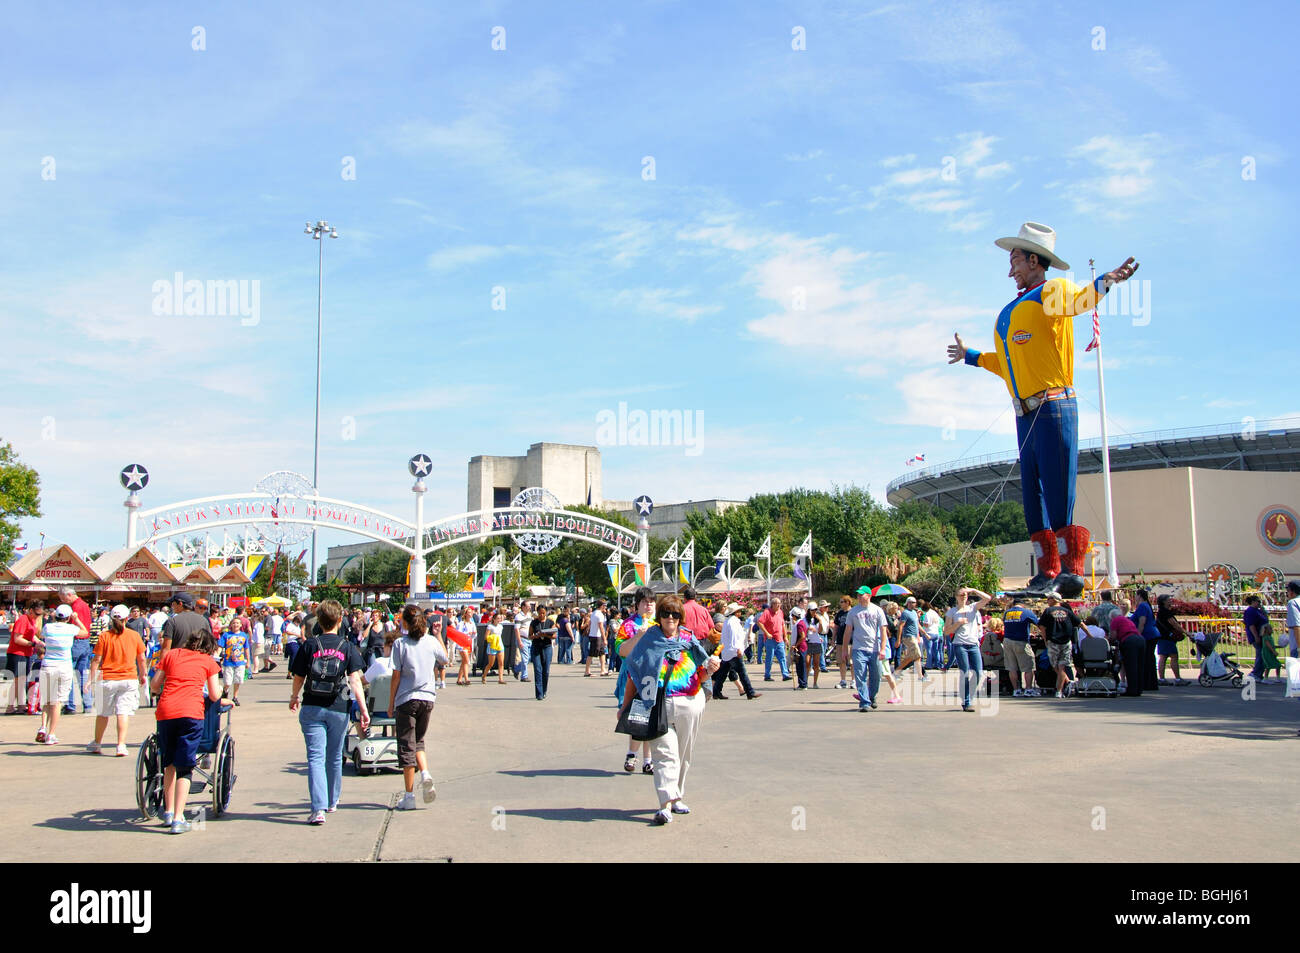 Texas State Fair, Dallas, Texas, USA - Stock Image